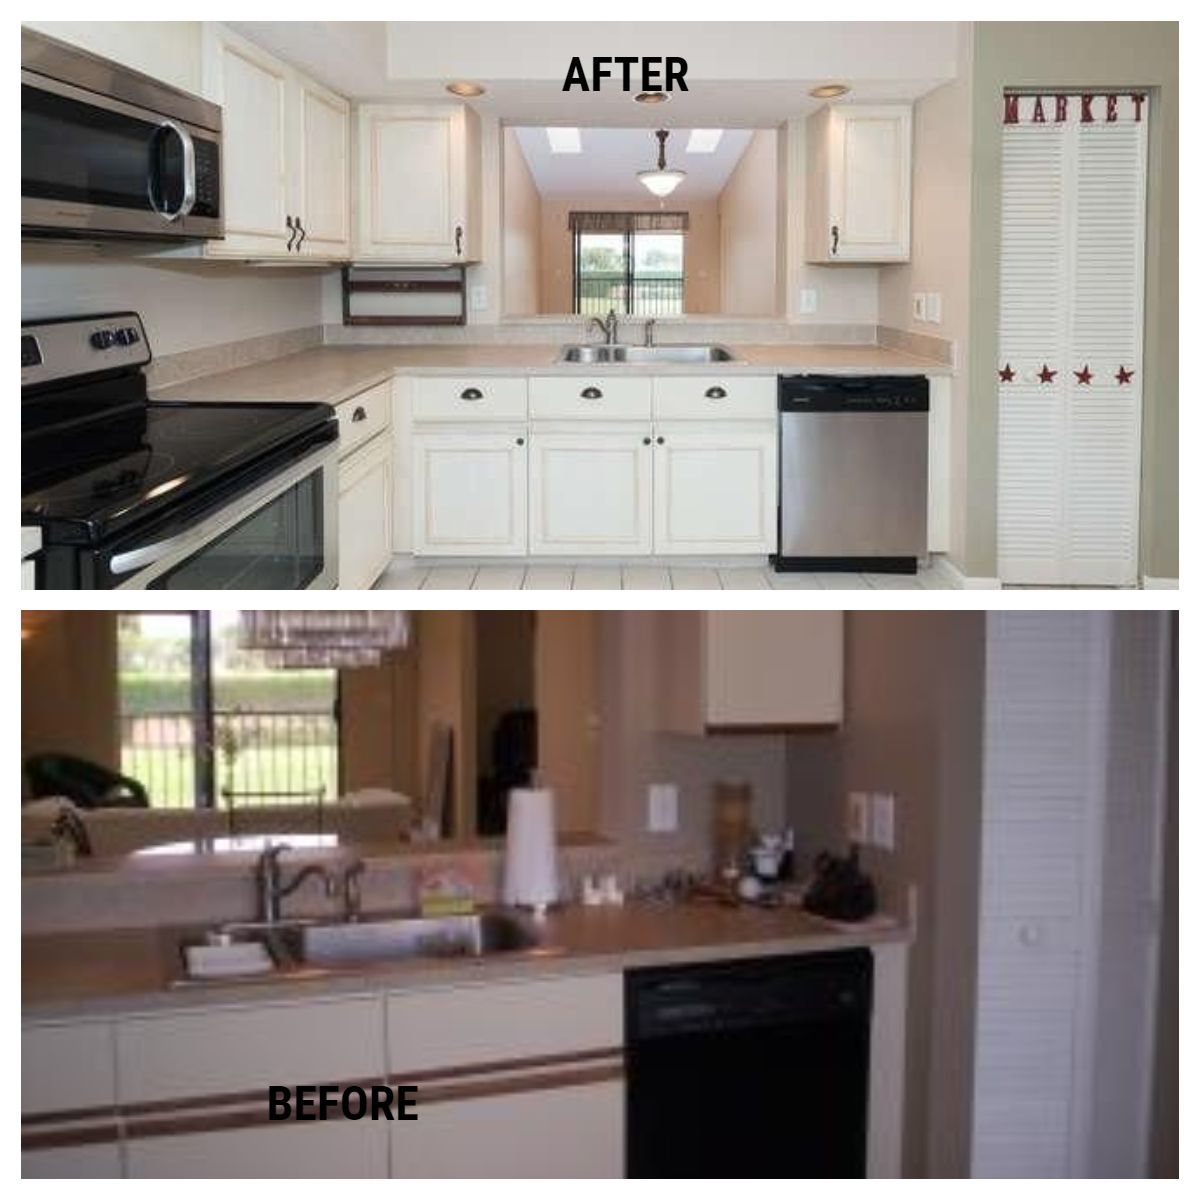 Diy Painting Kitchen Cabinets Before After Kitchen Cabinets In Bathroom Painting Kitchen Cabinets Diy Kitchen Cabinets Painting